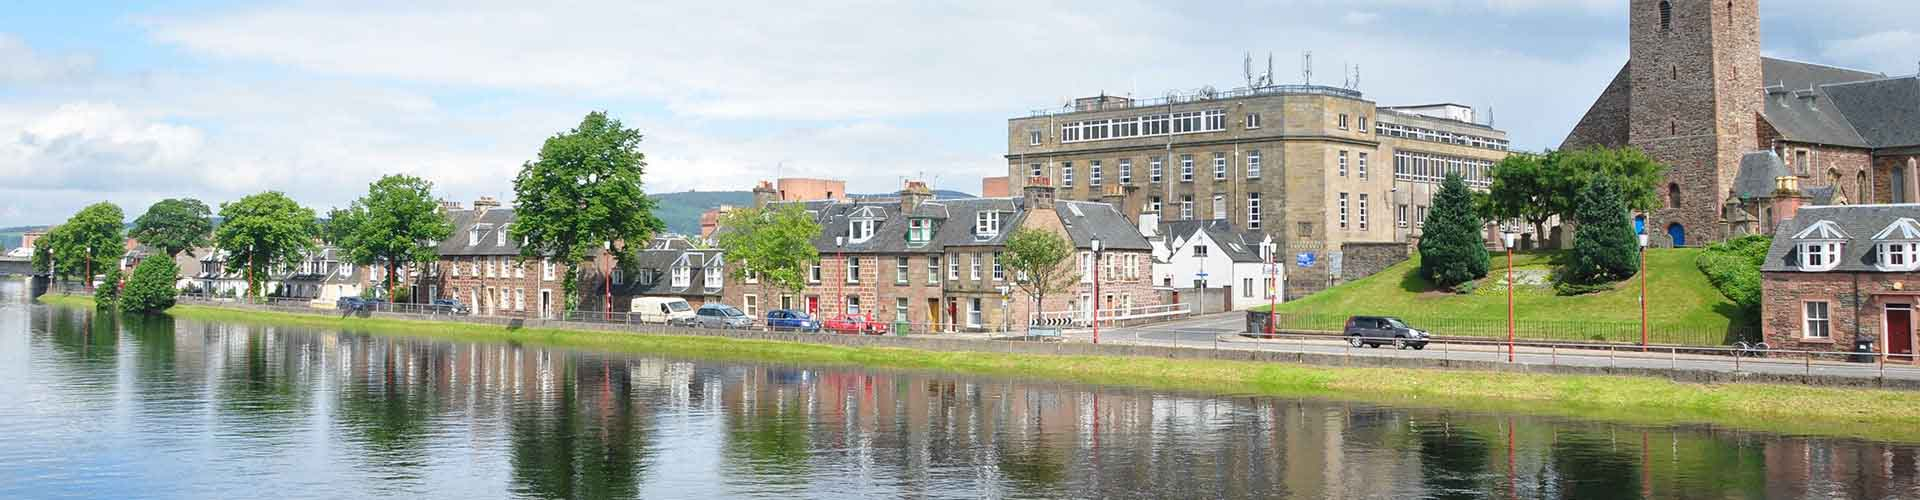 Inverness – Hostels in Inverness. Maps for Inverness, Photos and Reviews for each hostel in Inverness.